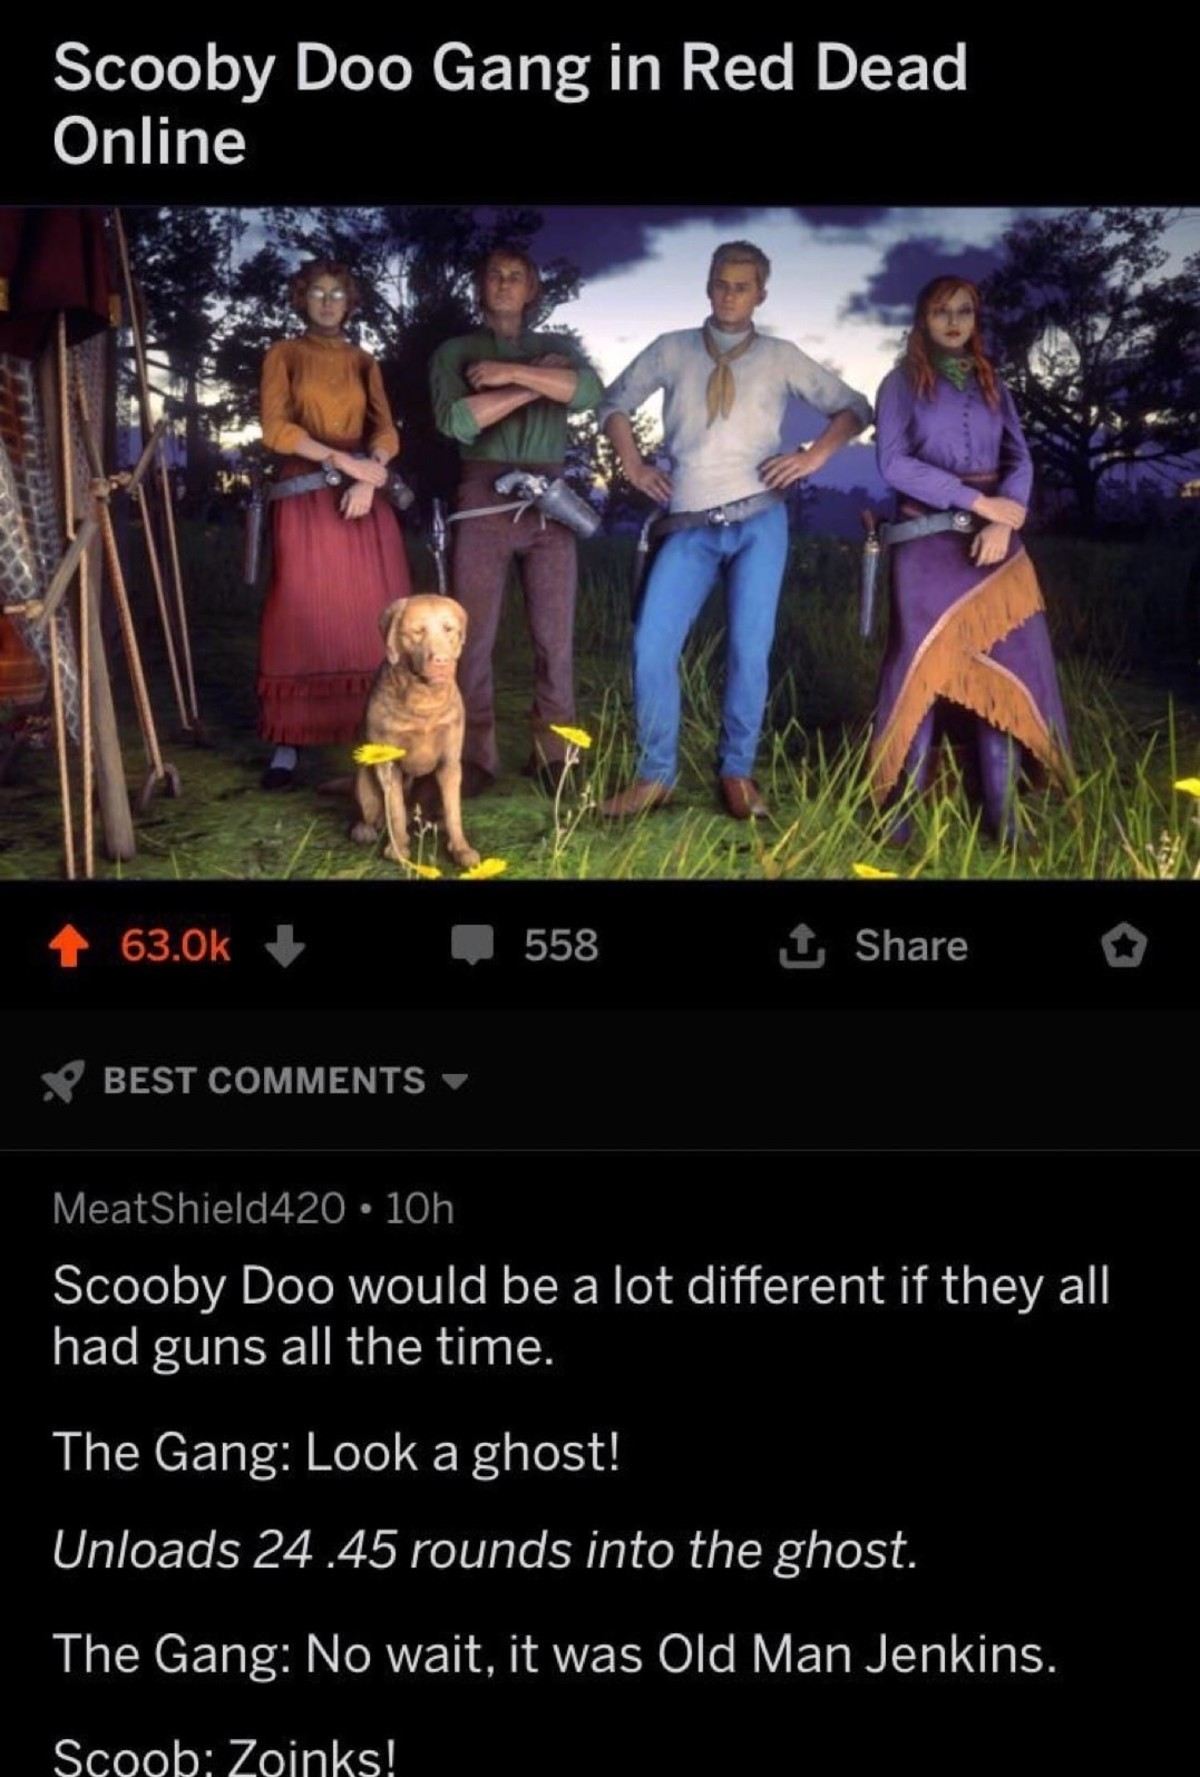 Scooby Doo. .. Scooby never said zoinks! REEEEE